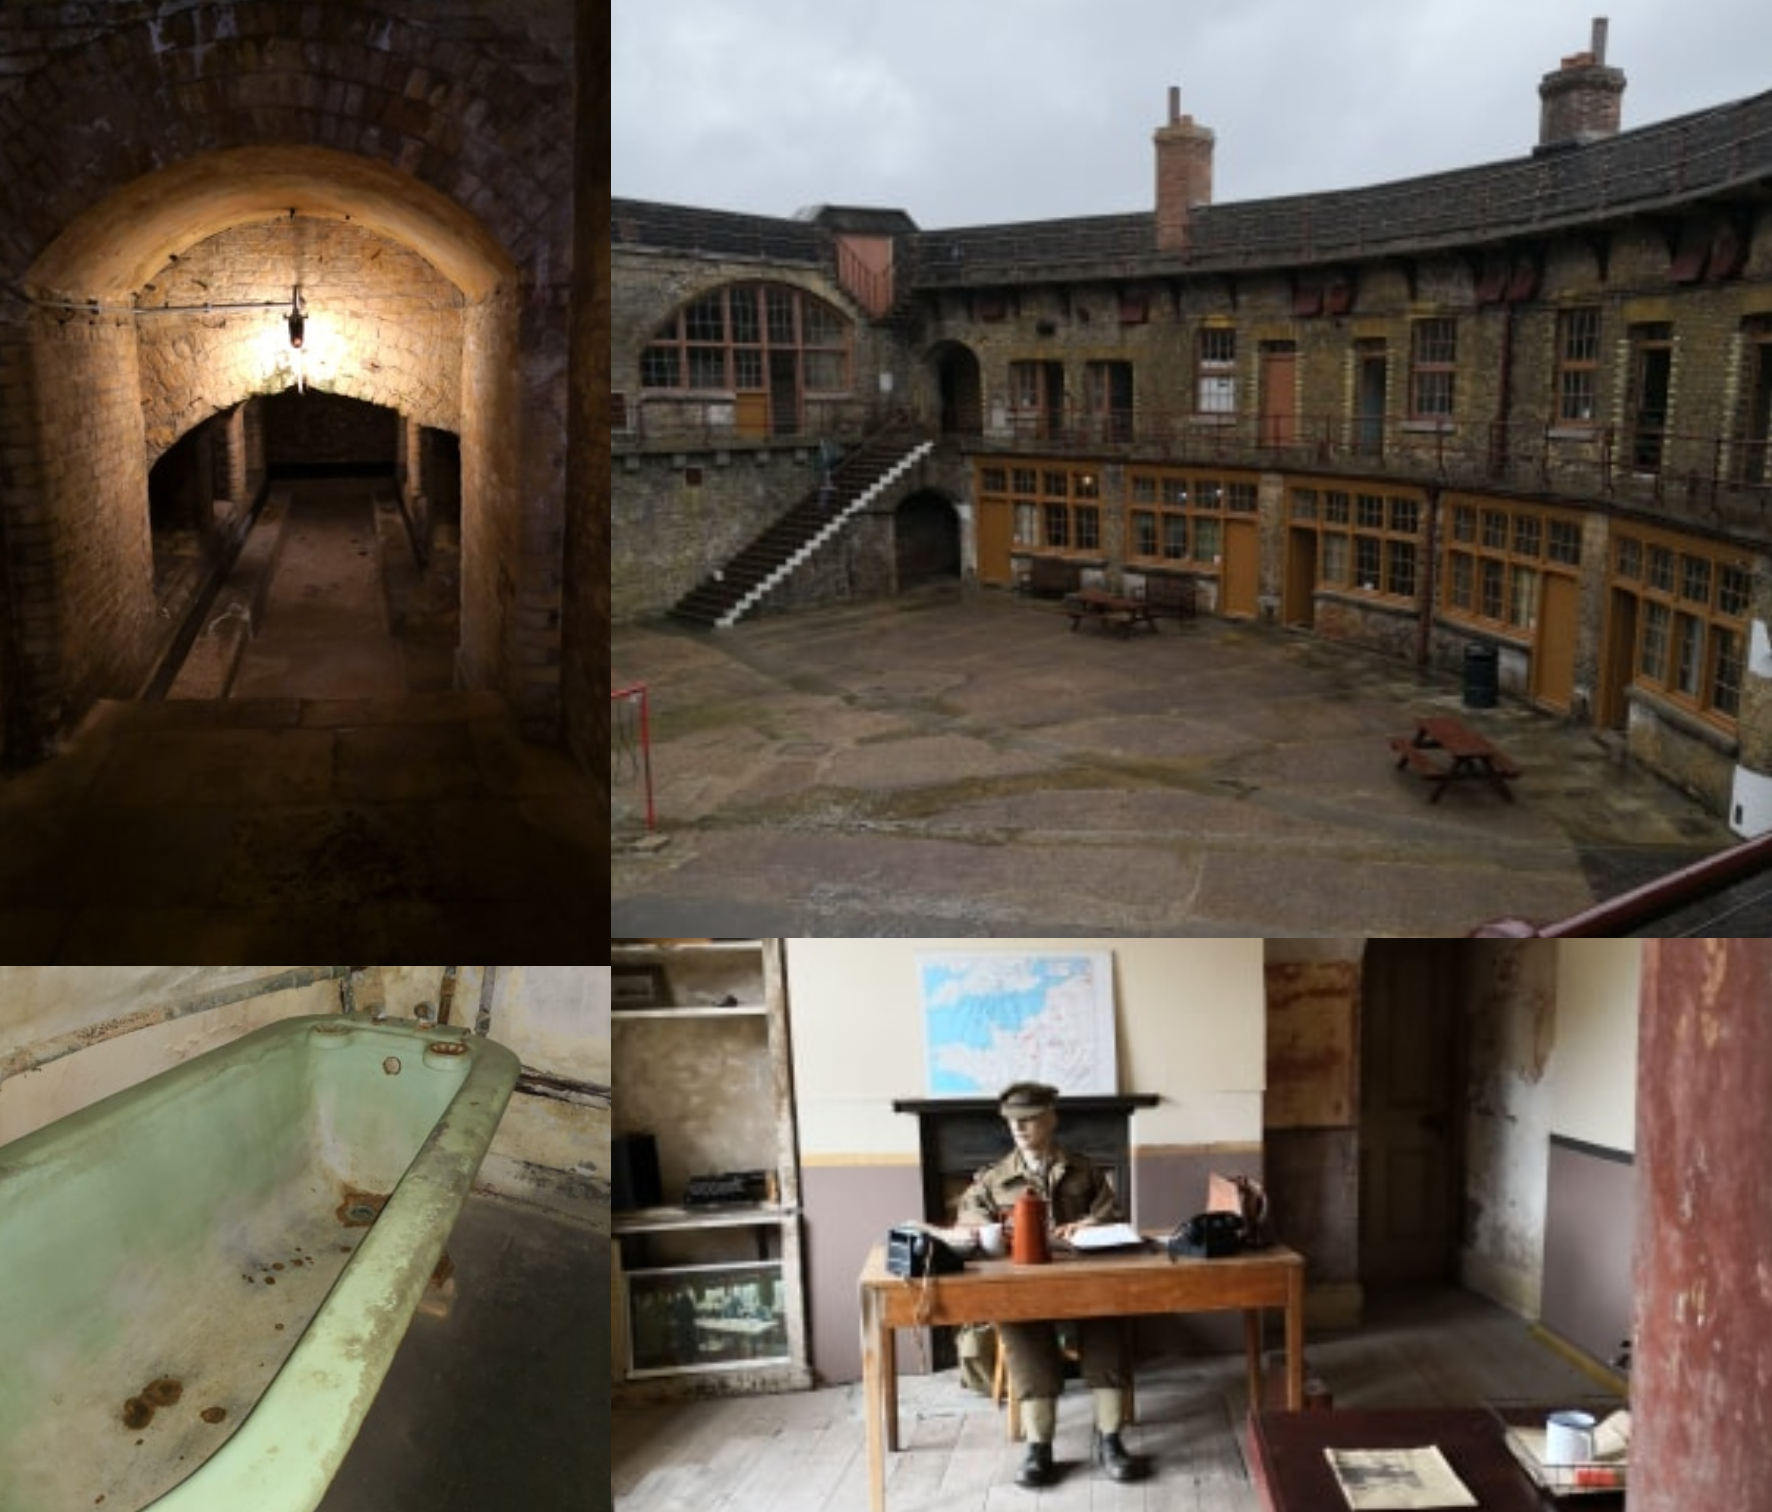 LANDGUARD FORT VALENTINES DAY CHILLER GHOST HUNT – £45 (VIP £40.50) 13/02/21